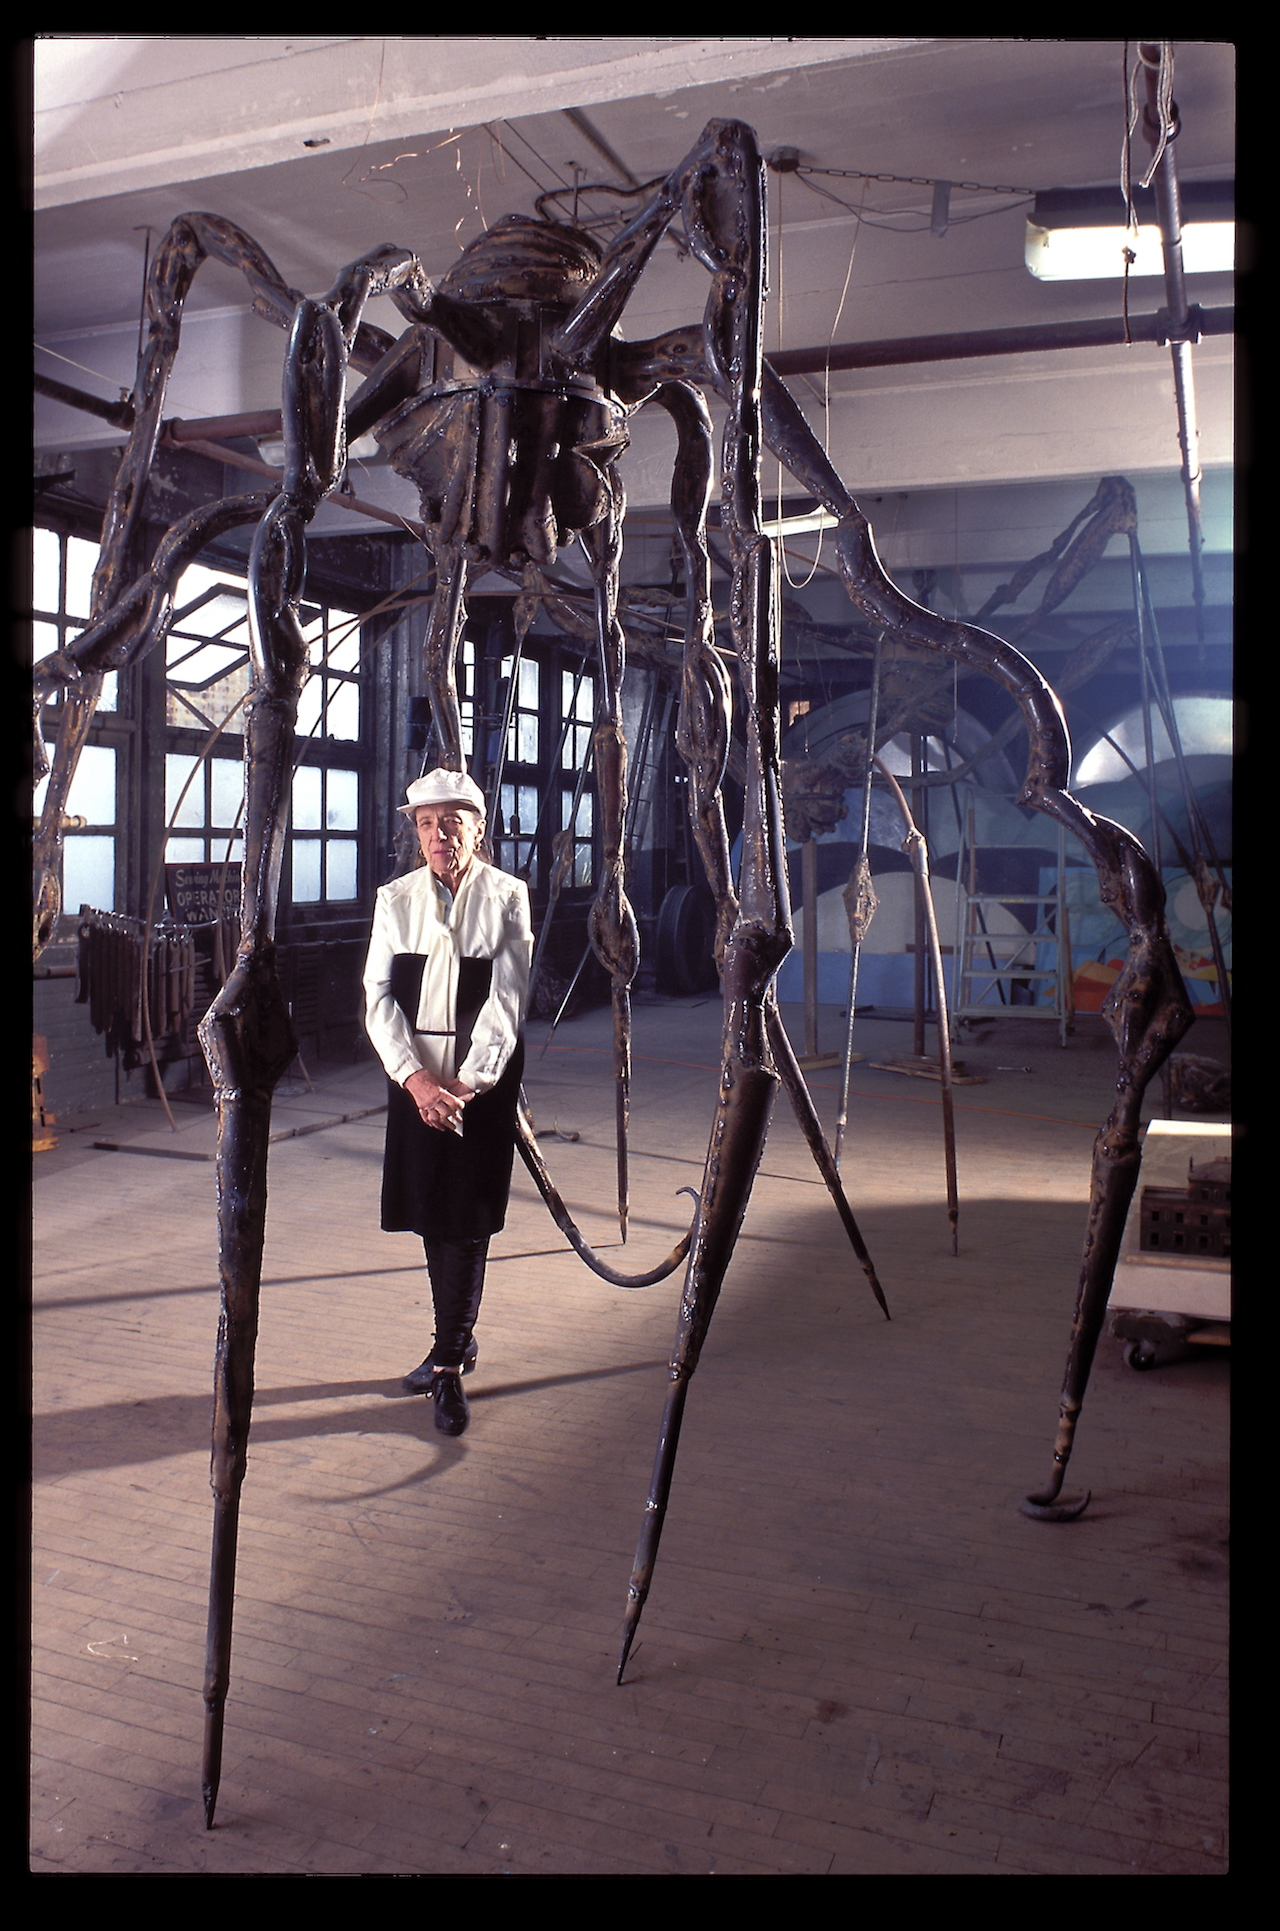 Louise Bourgeois with 'Maman,' Brooklyn (photo © Jean-François Jaussaud / Art: © The Easton Foundation)